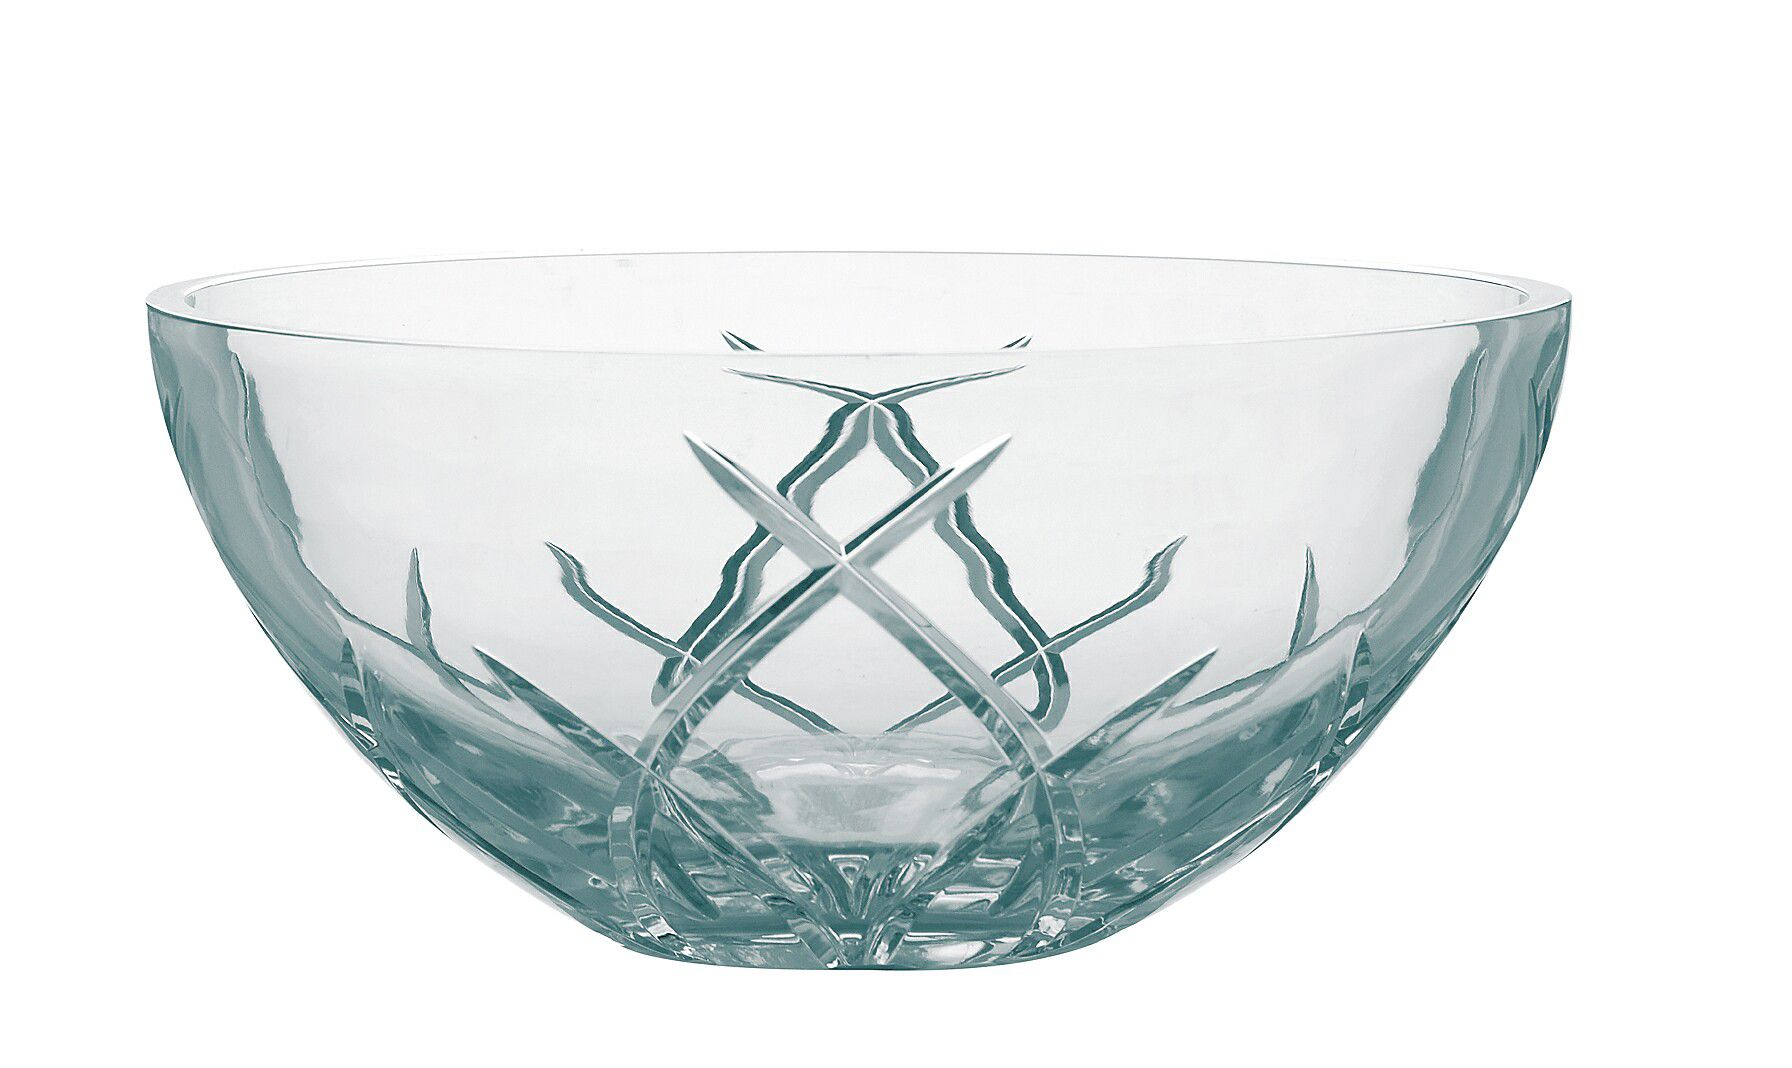 House of Fraser Galway Mystique 85 bowl : I07222703168885120140723 from myhomeneedsthat.com size 1792 x 1068 jpeg 139kB